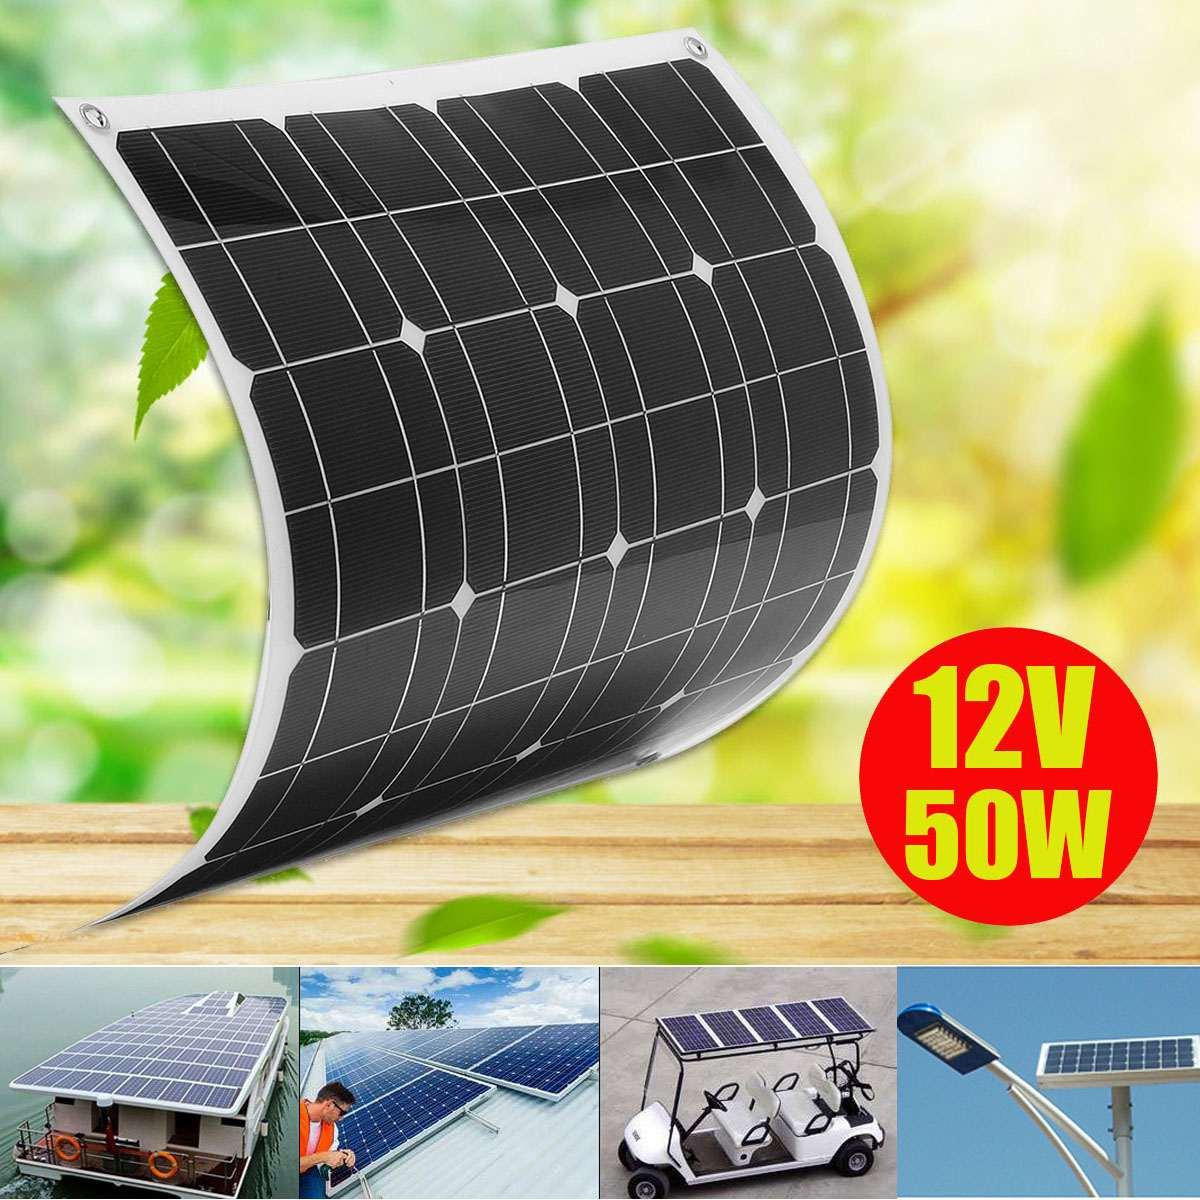 KINCO 12V/50W Semi-Flexible Solar Panel Monocrystalline Silicon Solar System Power Supply For Car Battery Charger 12v 50w monocrystalline silicon solar panel solar battery charger sunpower panel solar free shipping solar panels 12v